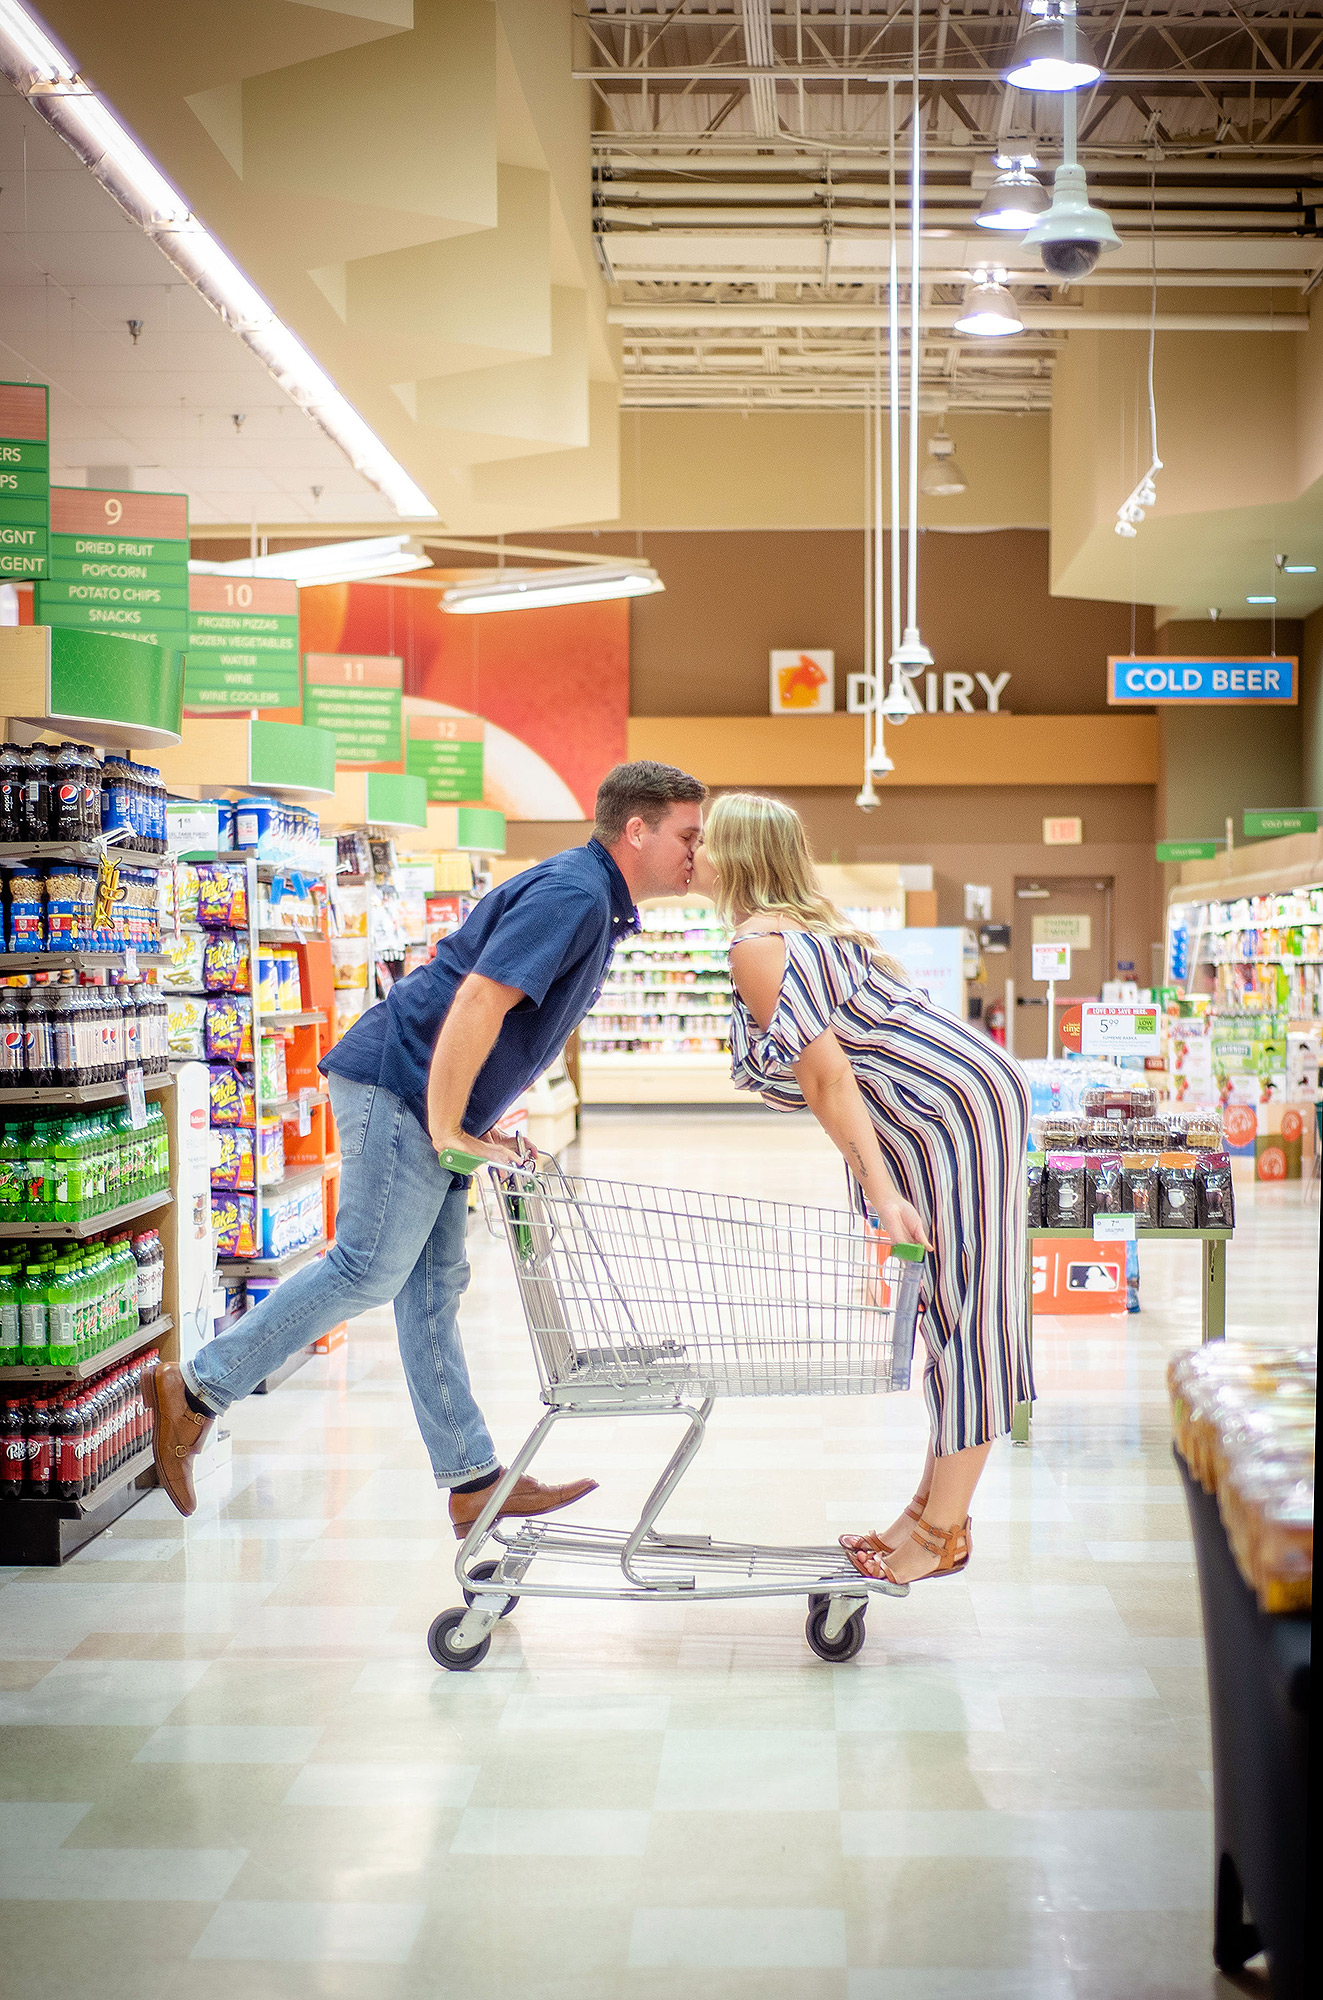 Alexandra Darch and Dylan Smith took their engagement photos at a Publix.